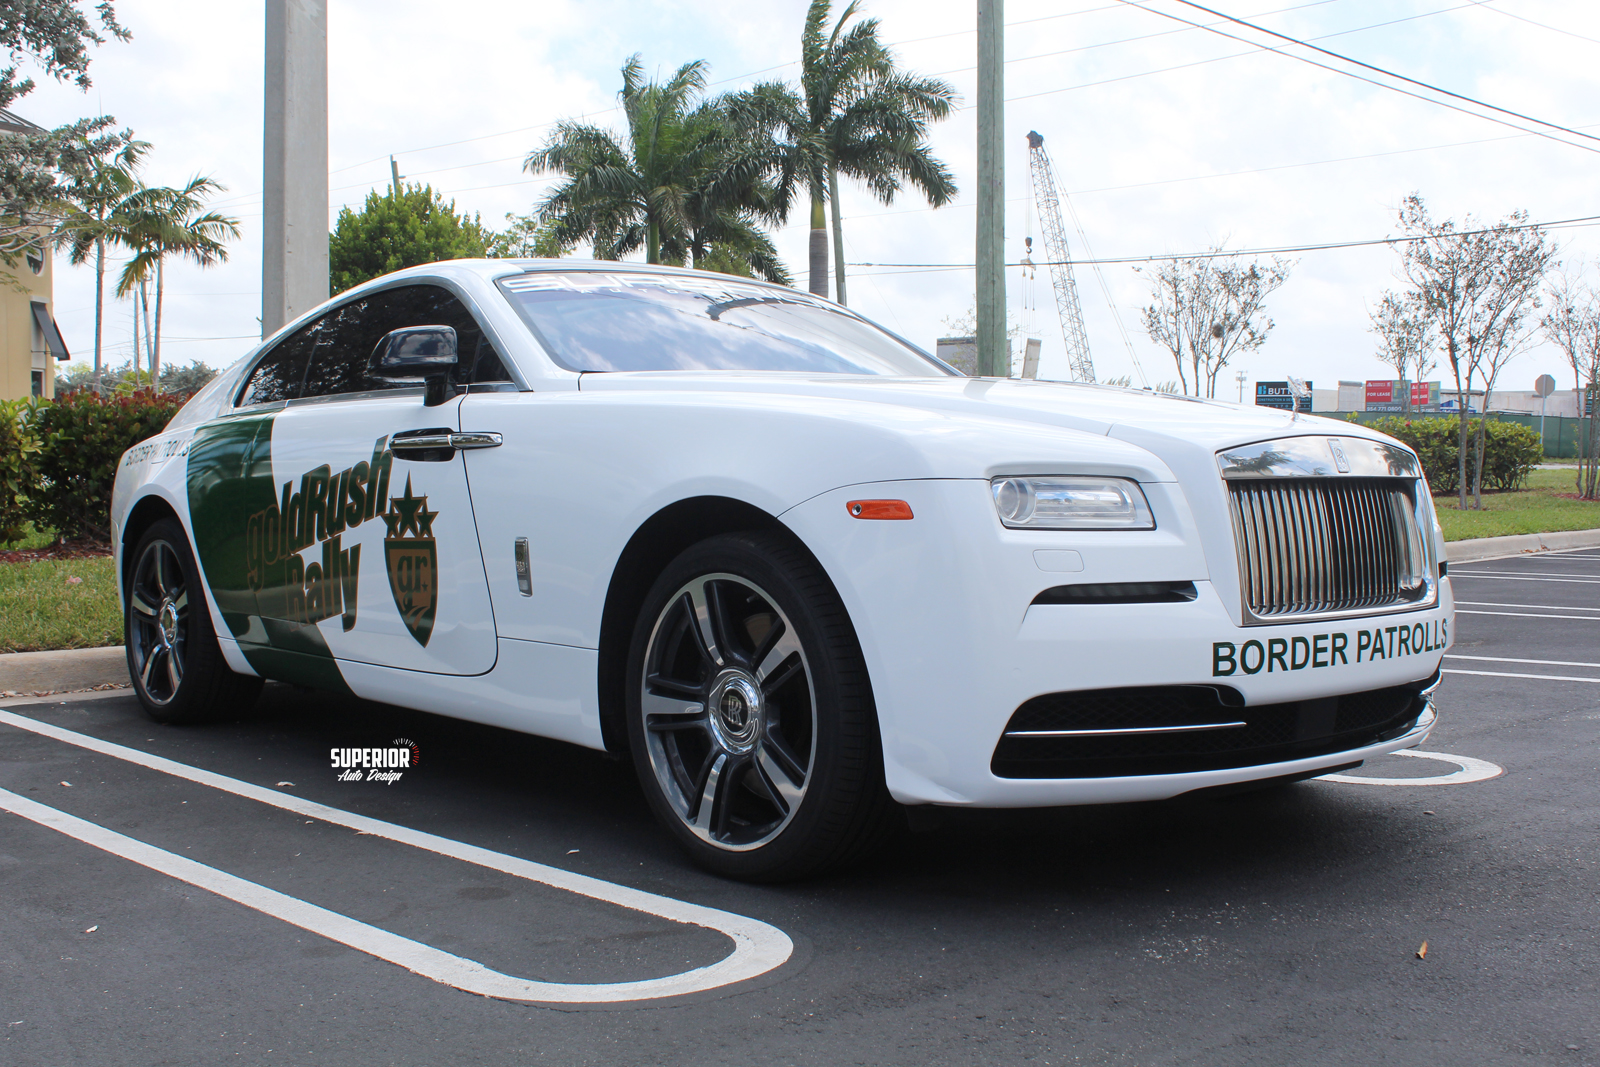 border patrolls rolls royce gold rush superior auto design 1